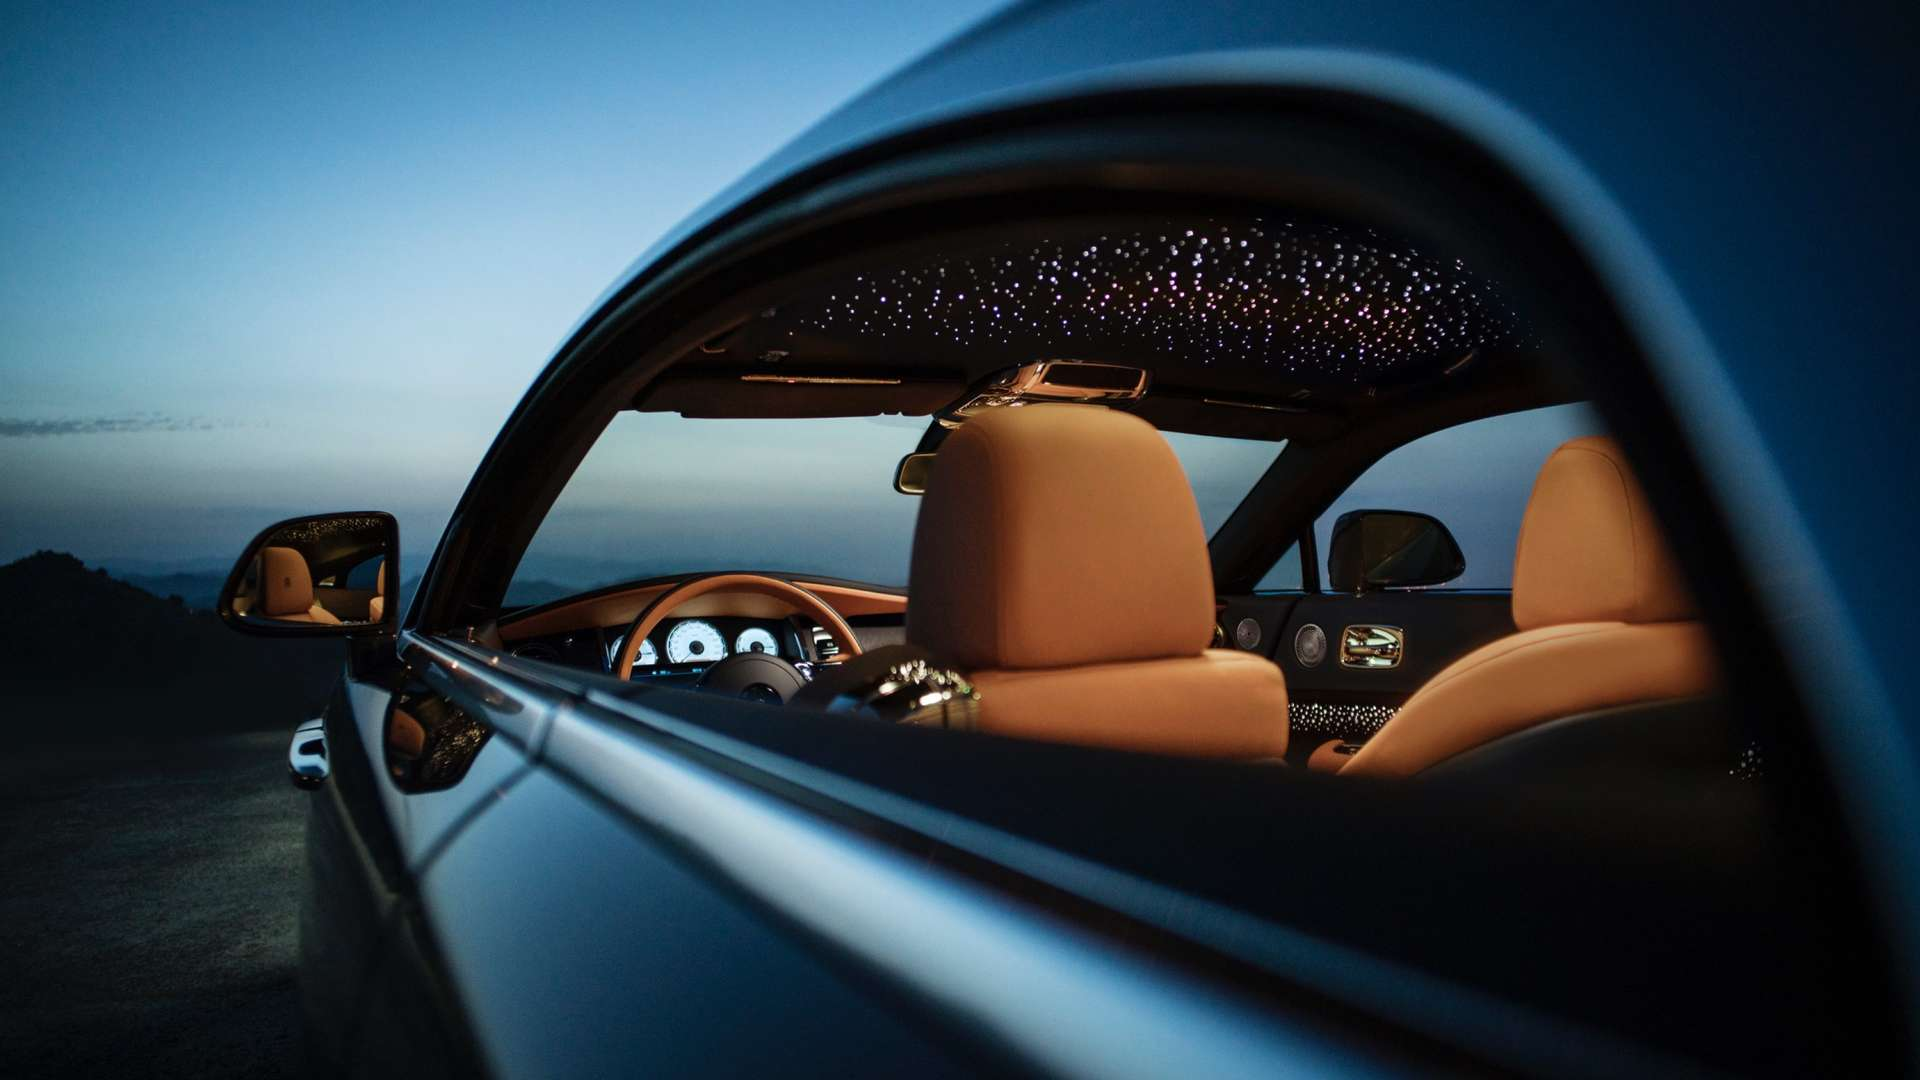 Rolls-Royce Wraith discover interior width, through driving window